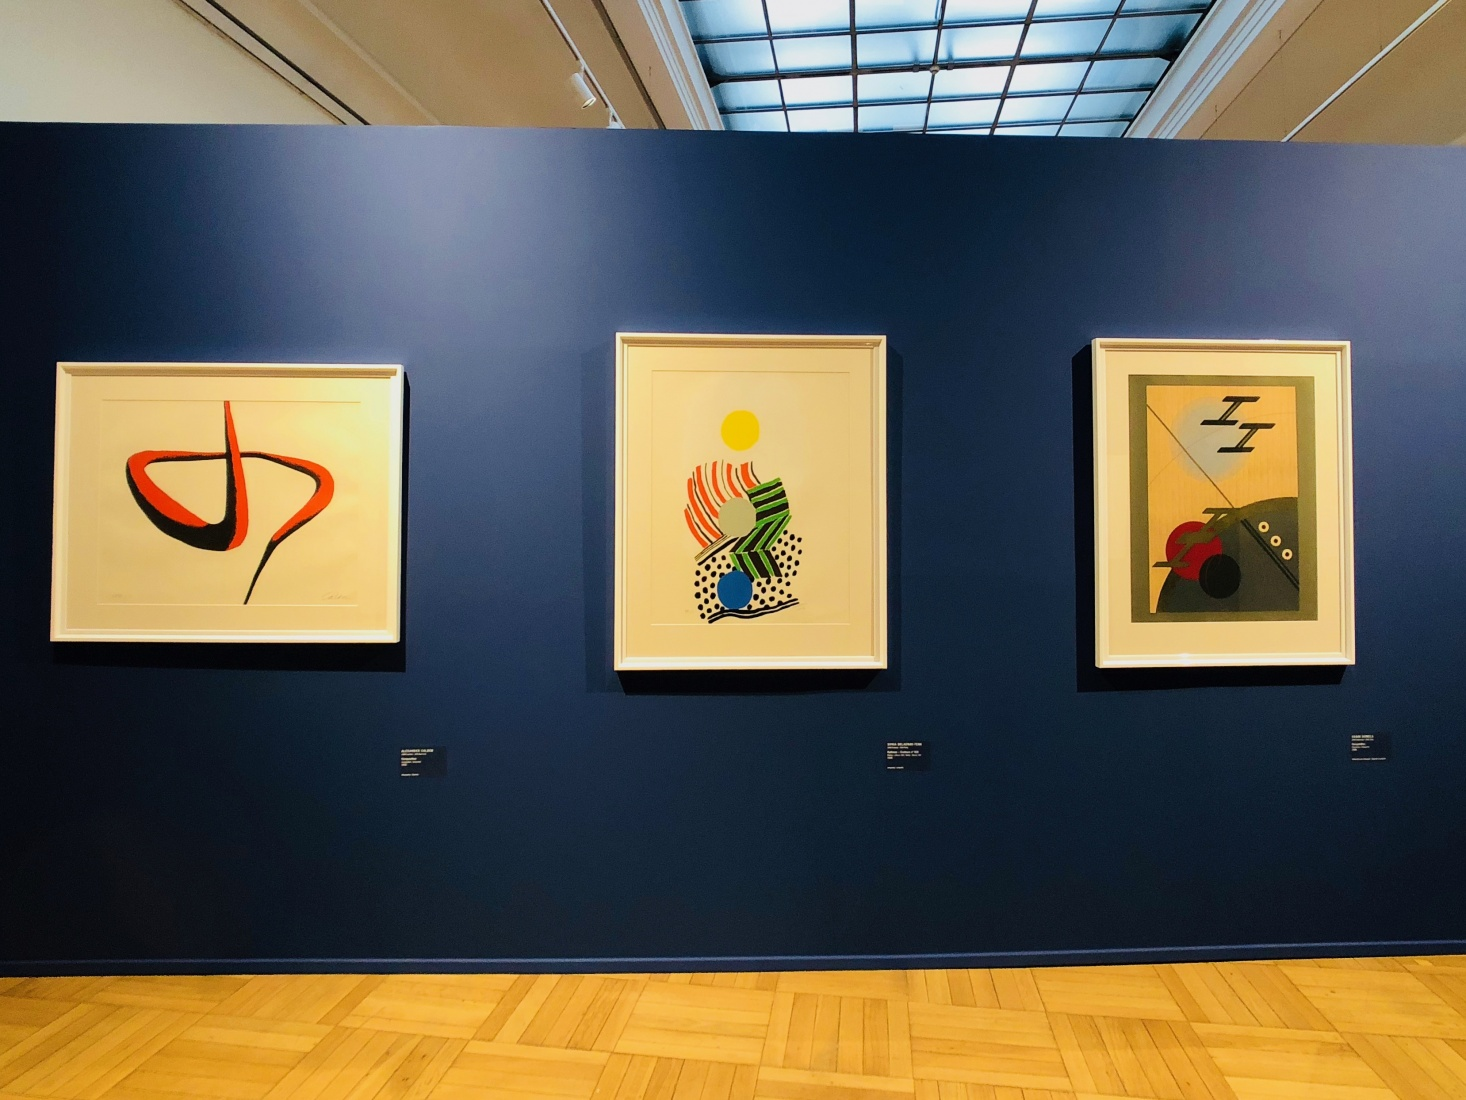 An exhibition in the House of Art, Ostrava, Czech Republic, featuring abstract graphics from the 1930s.